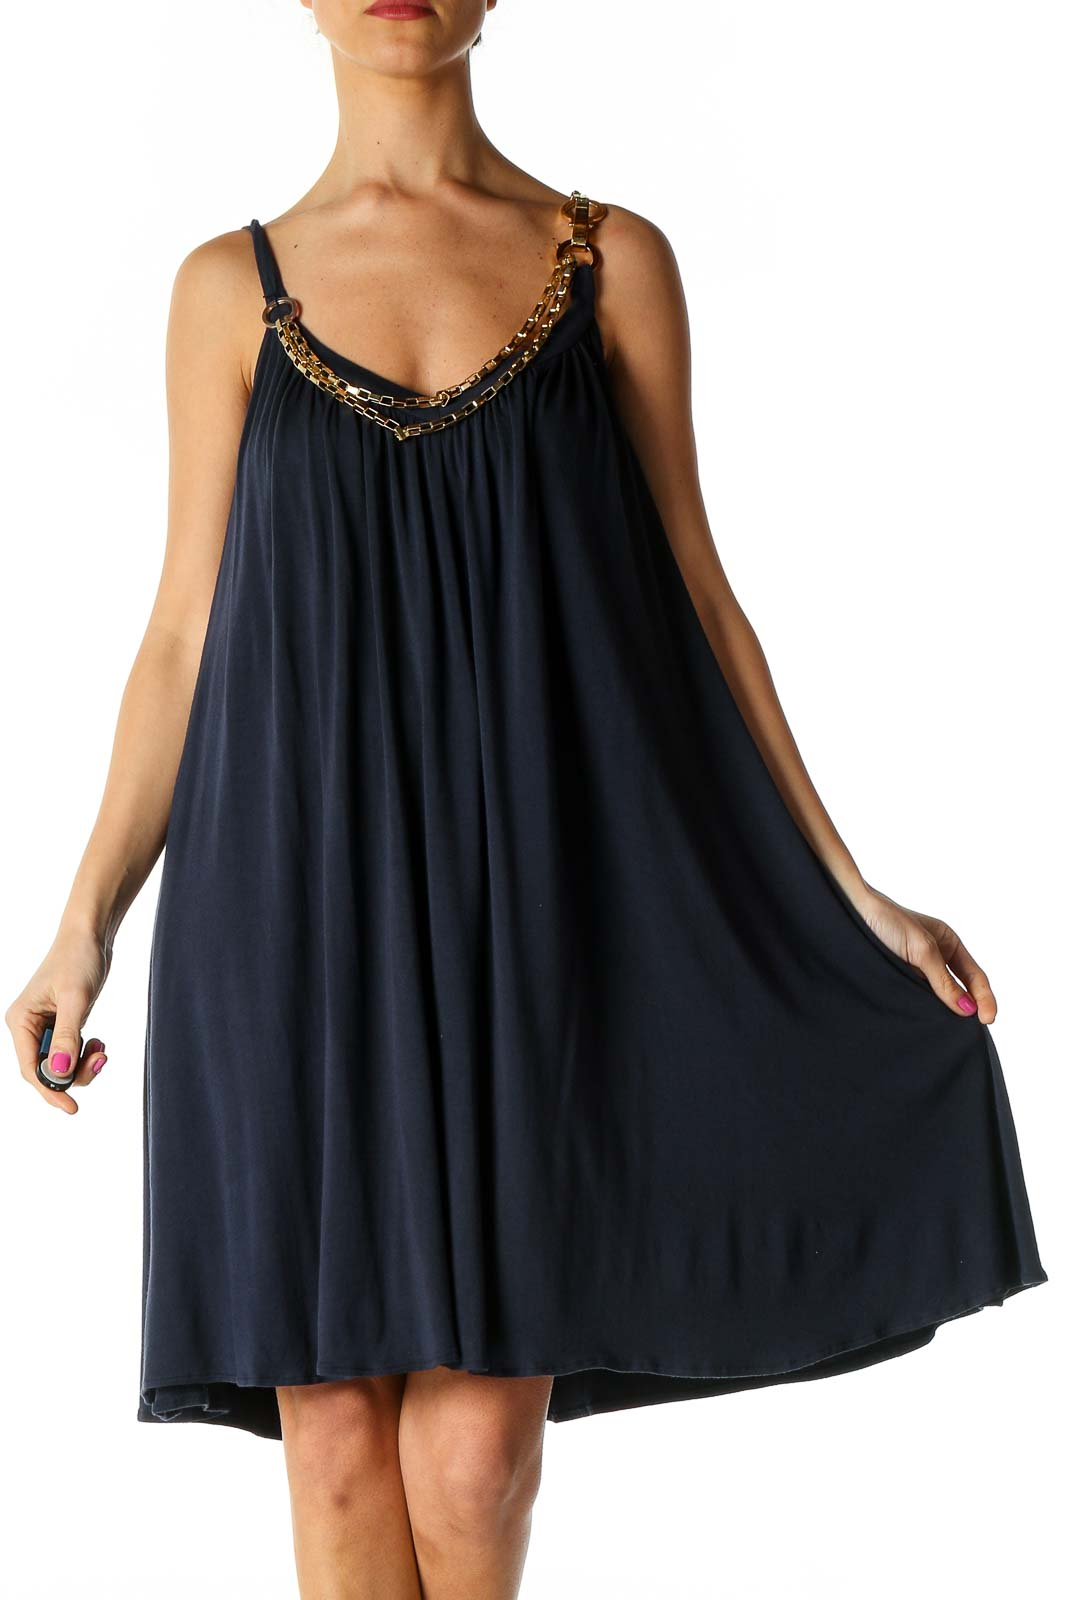 Navy Casual Chain Dress Front